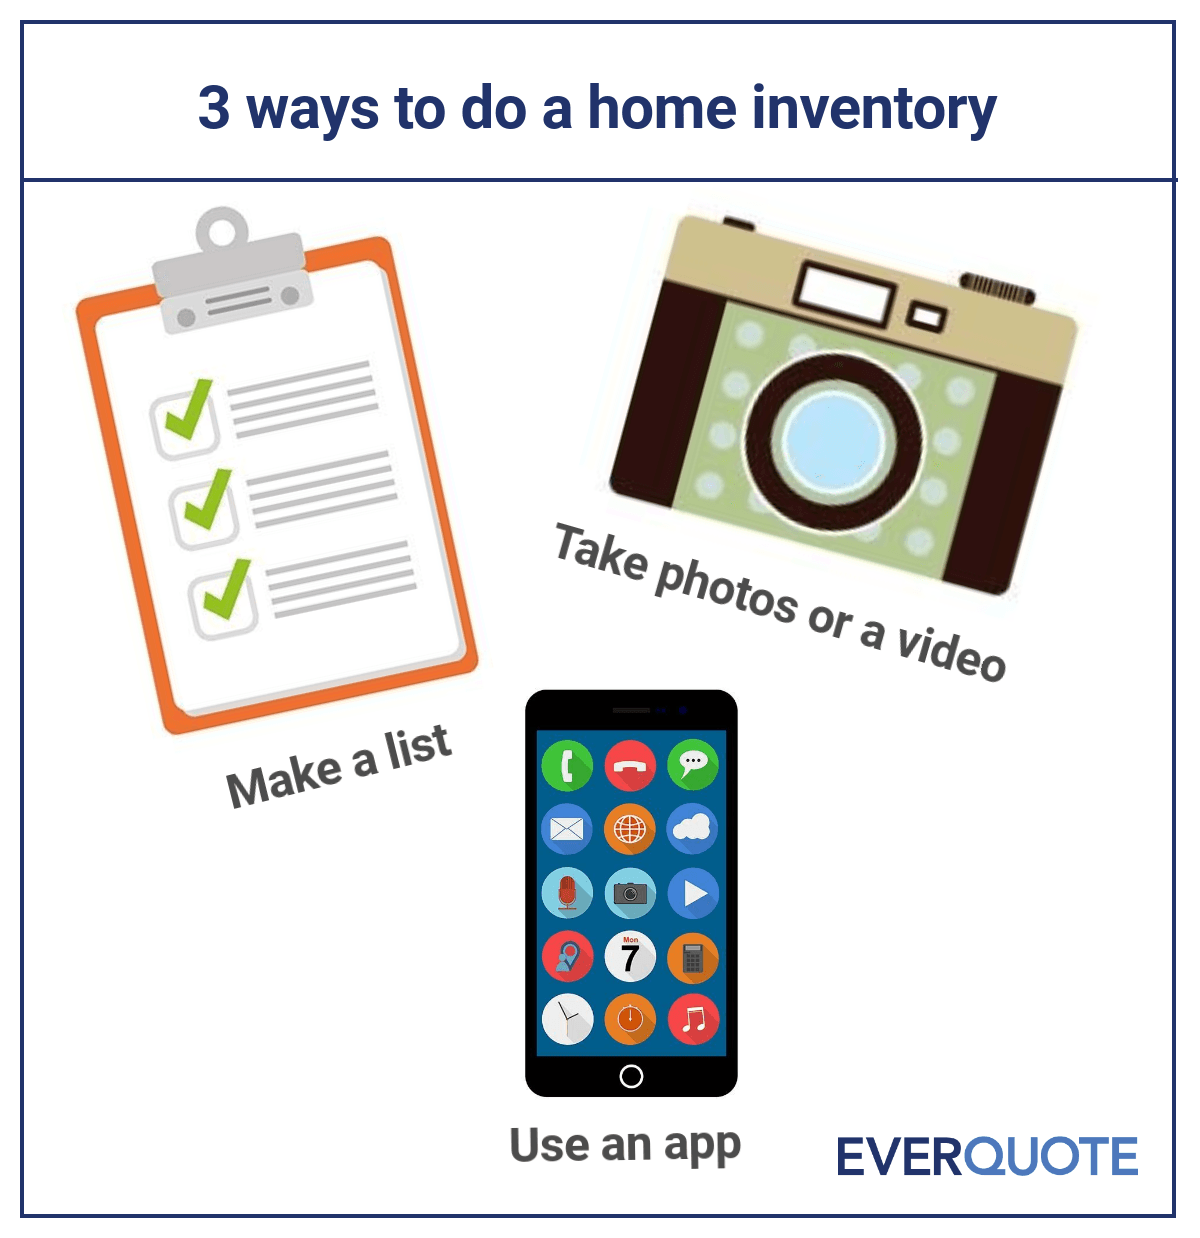 3 ways to do a home inventory